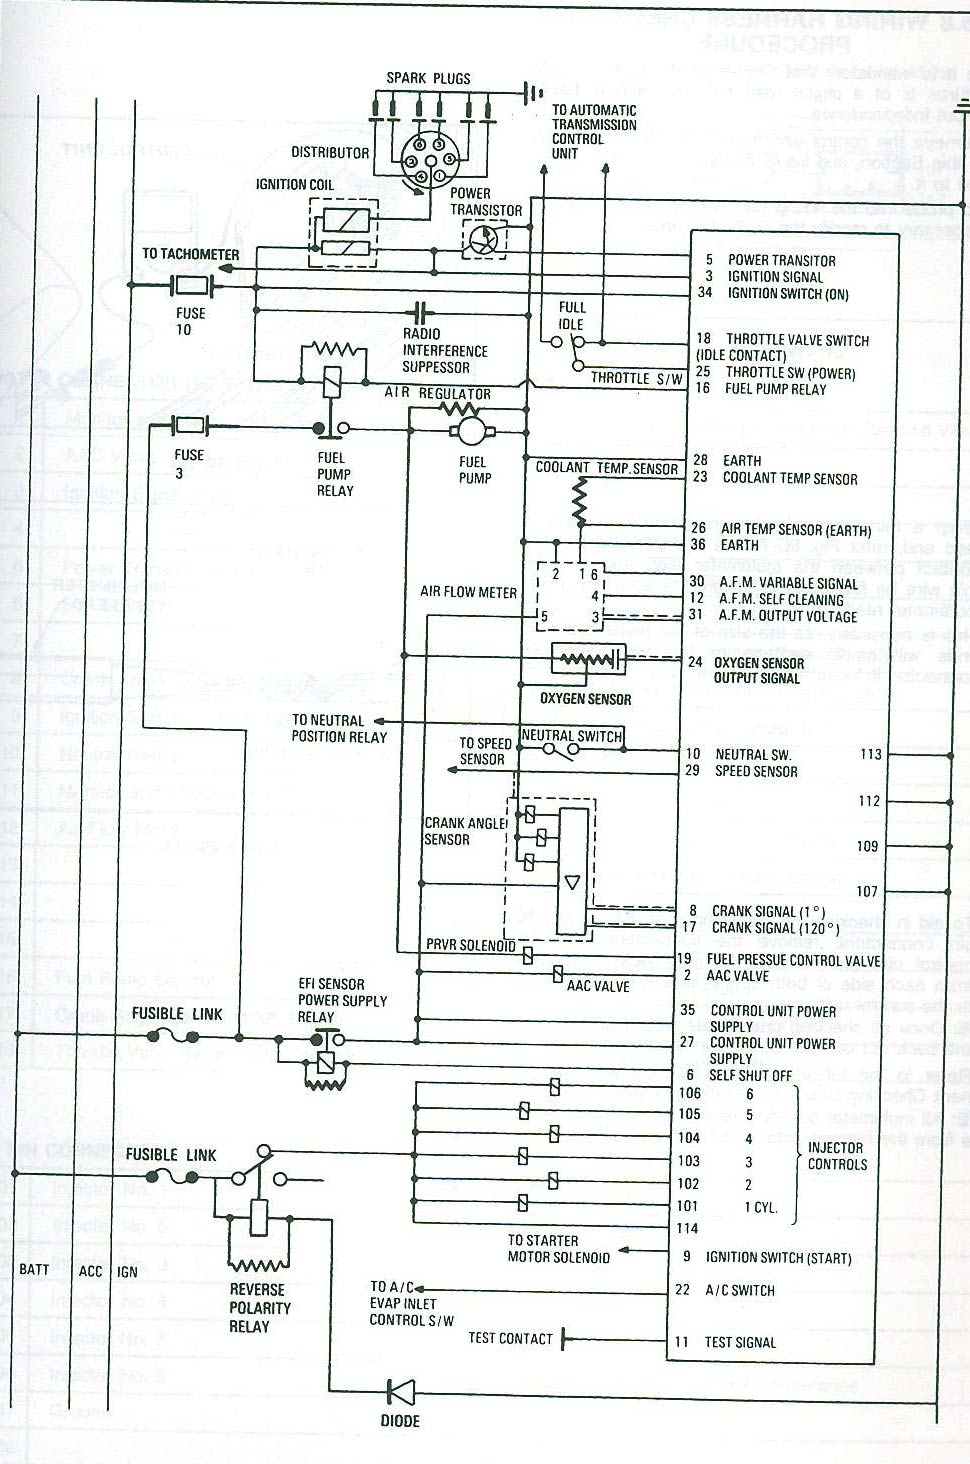 ecu fuse diagram rb wiring diagrams zx project gmos wiring diagram  Club Car Wiring Diagram on 93 club car wiring diagram, 1985 club car wiring diagram, 86 club car wiring diagram, club car headlight wiring diagram, club car solenoid wiring diagram, 1987 club car wiring diagram, 84 club car wiring diagram, club car light wiring diagram, 92 club car wiring diagram, club car charger wiring diagram, 1982 club car wiring diagram, 94 club car wiring diagram, 01 club car wiring diagram, club car battery wiring diagram, 2000 club car golf cart wiring diagram, club car ignition wiring diagram, 95 club car wiring diagram,